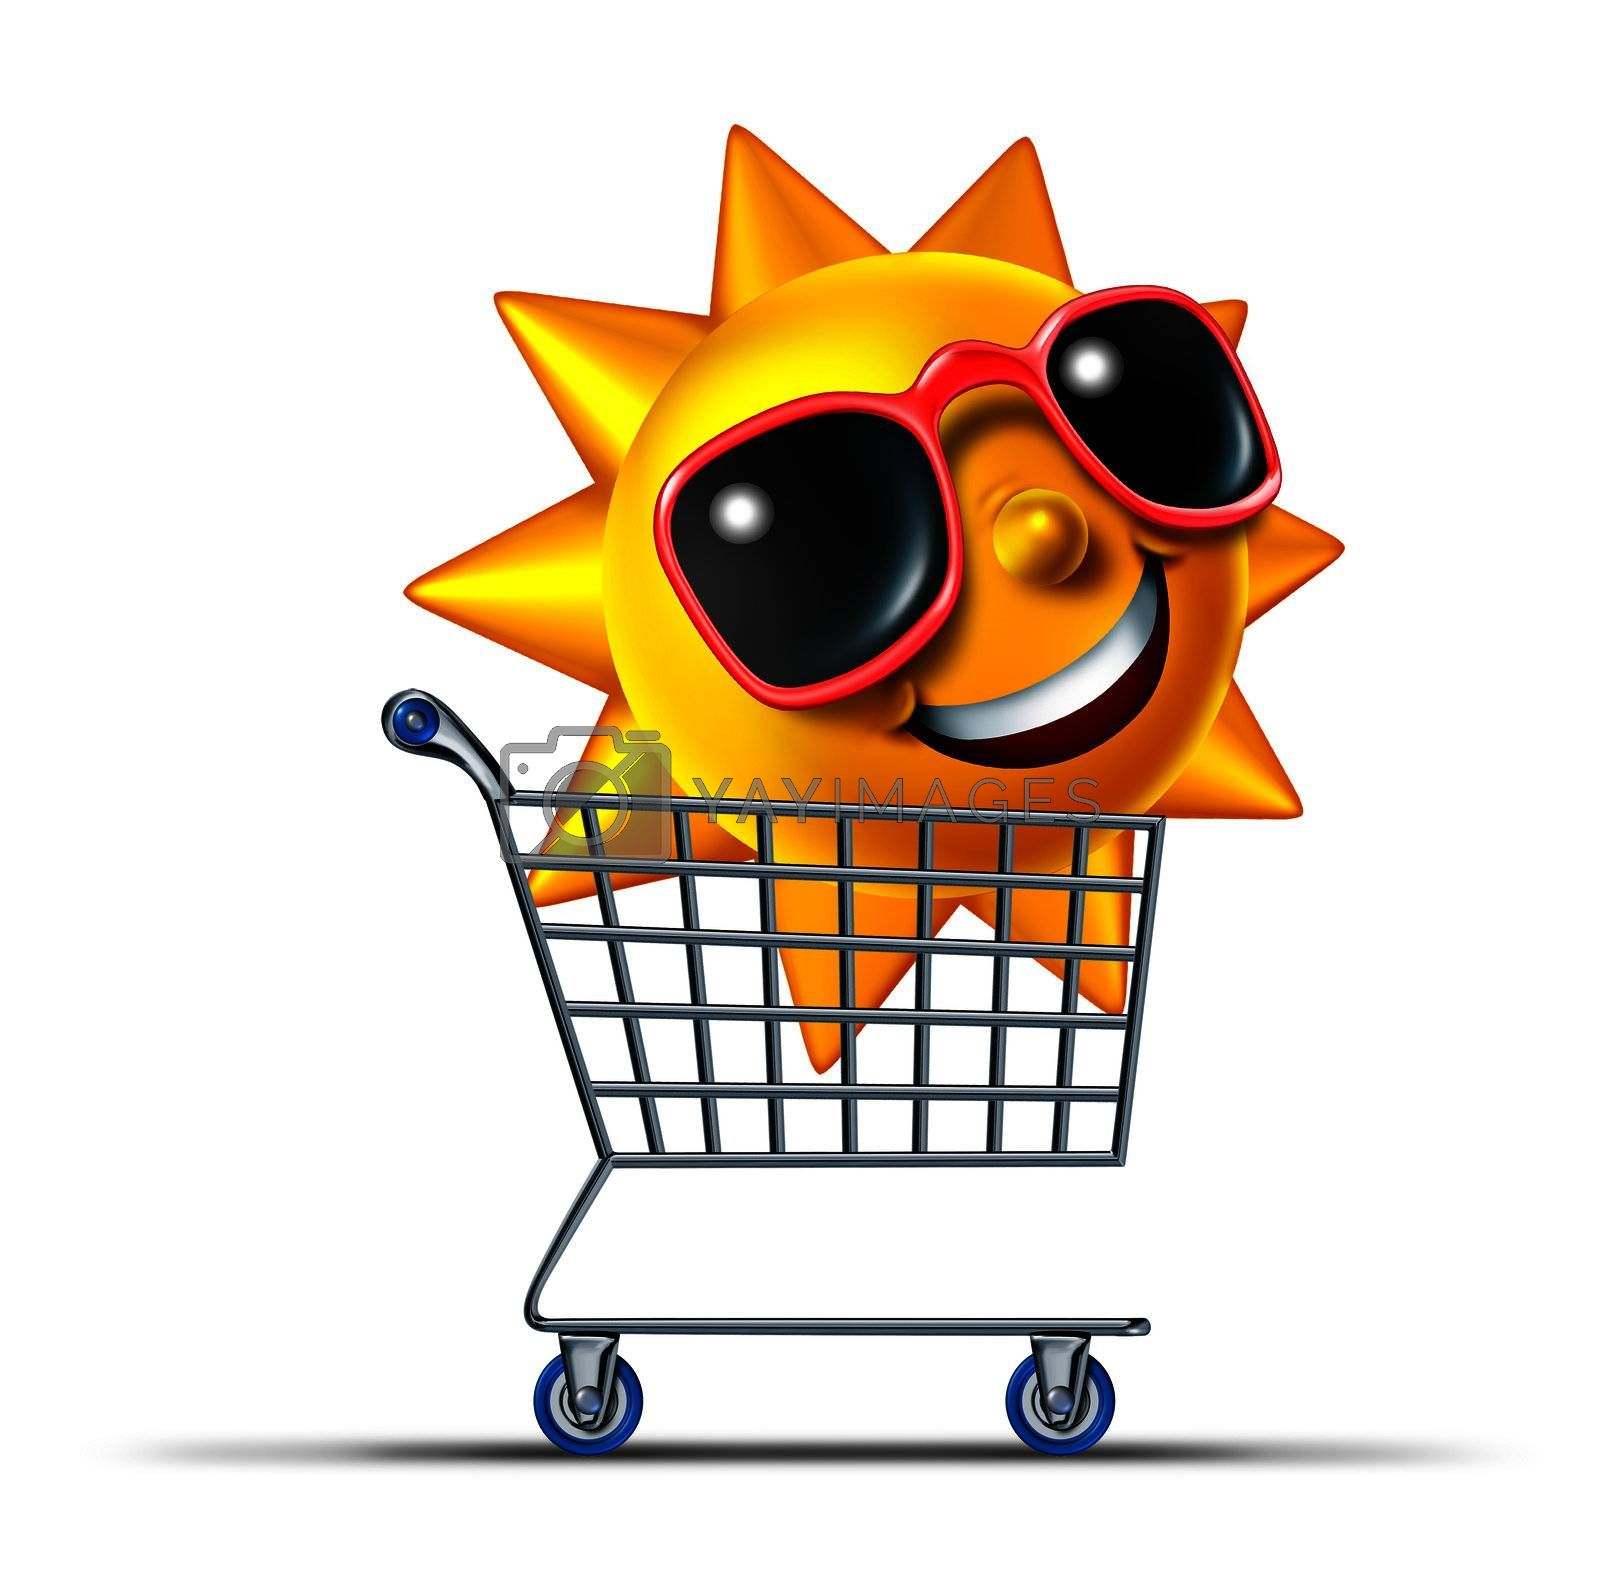 Vacation business tourism concept with a shopping cart and a fun summer sun character with sunglasses traveling to a hot destination for relaxation and leisure rest as a symbol of internet travel booking.